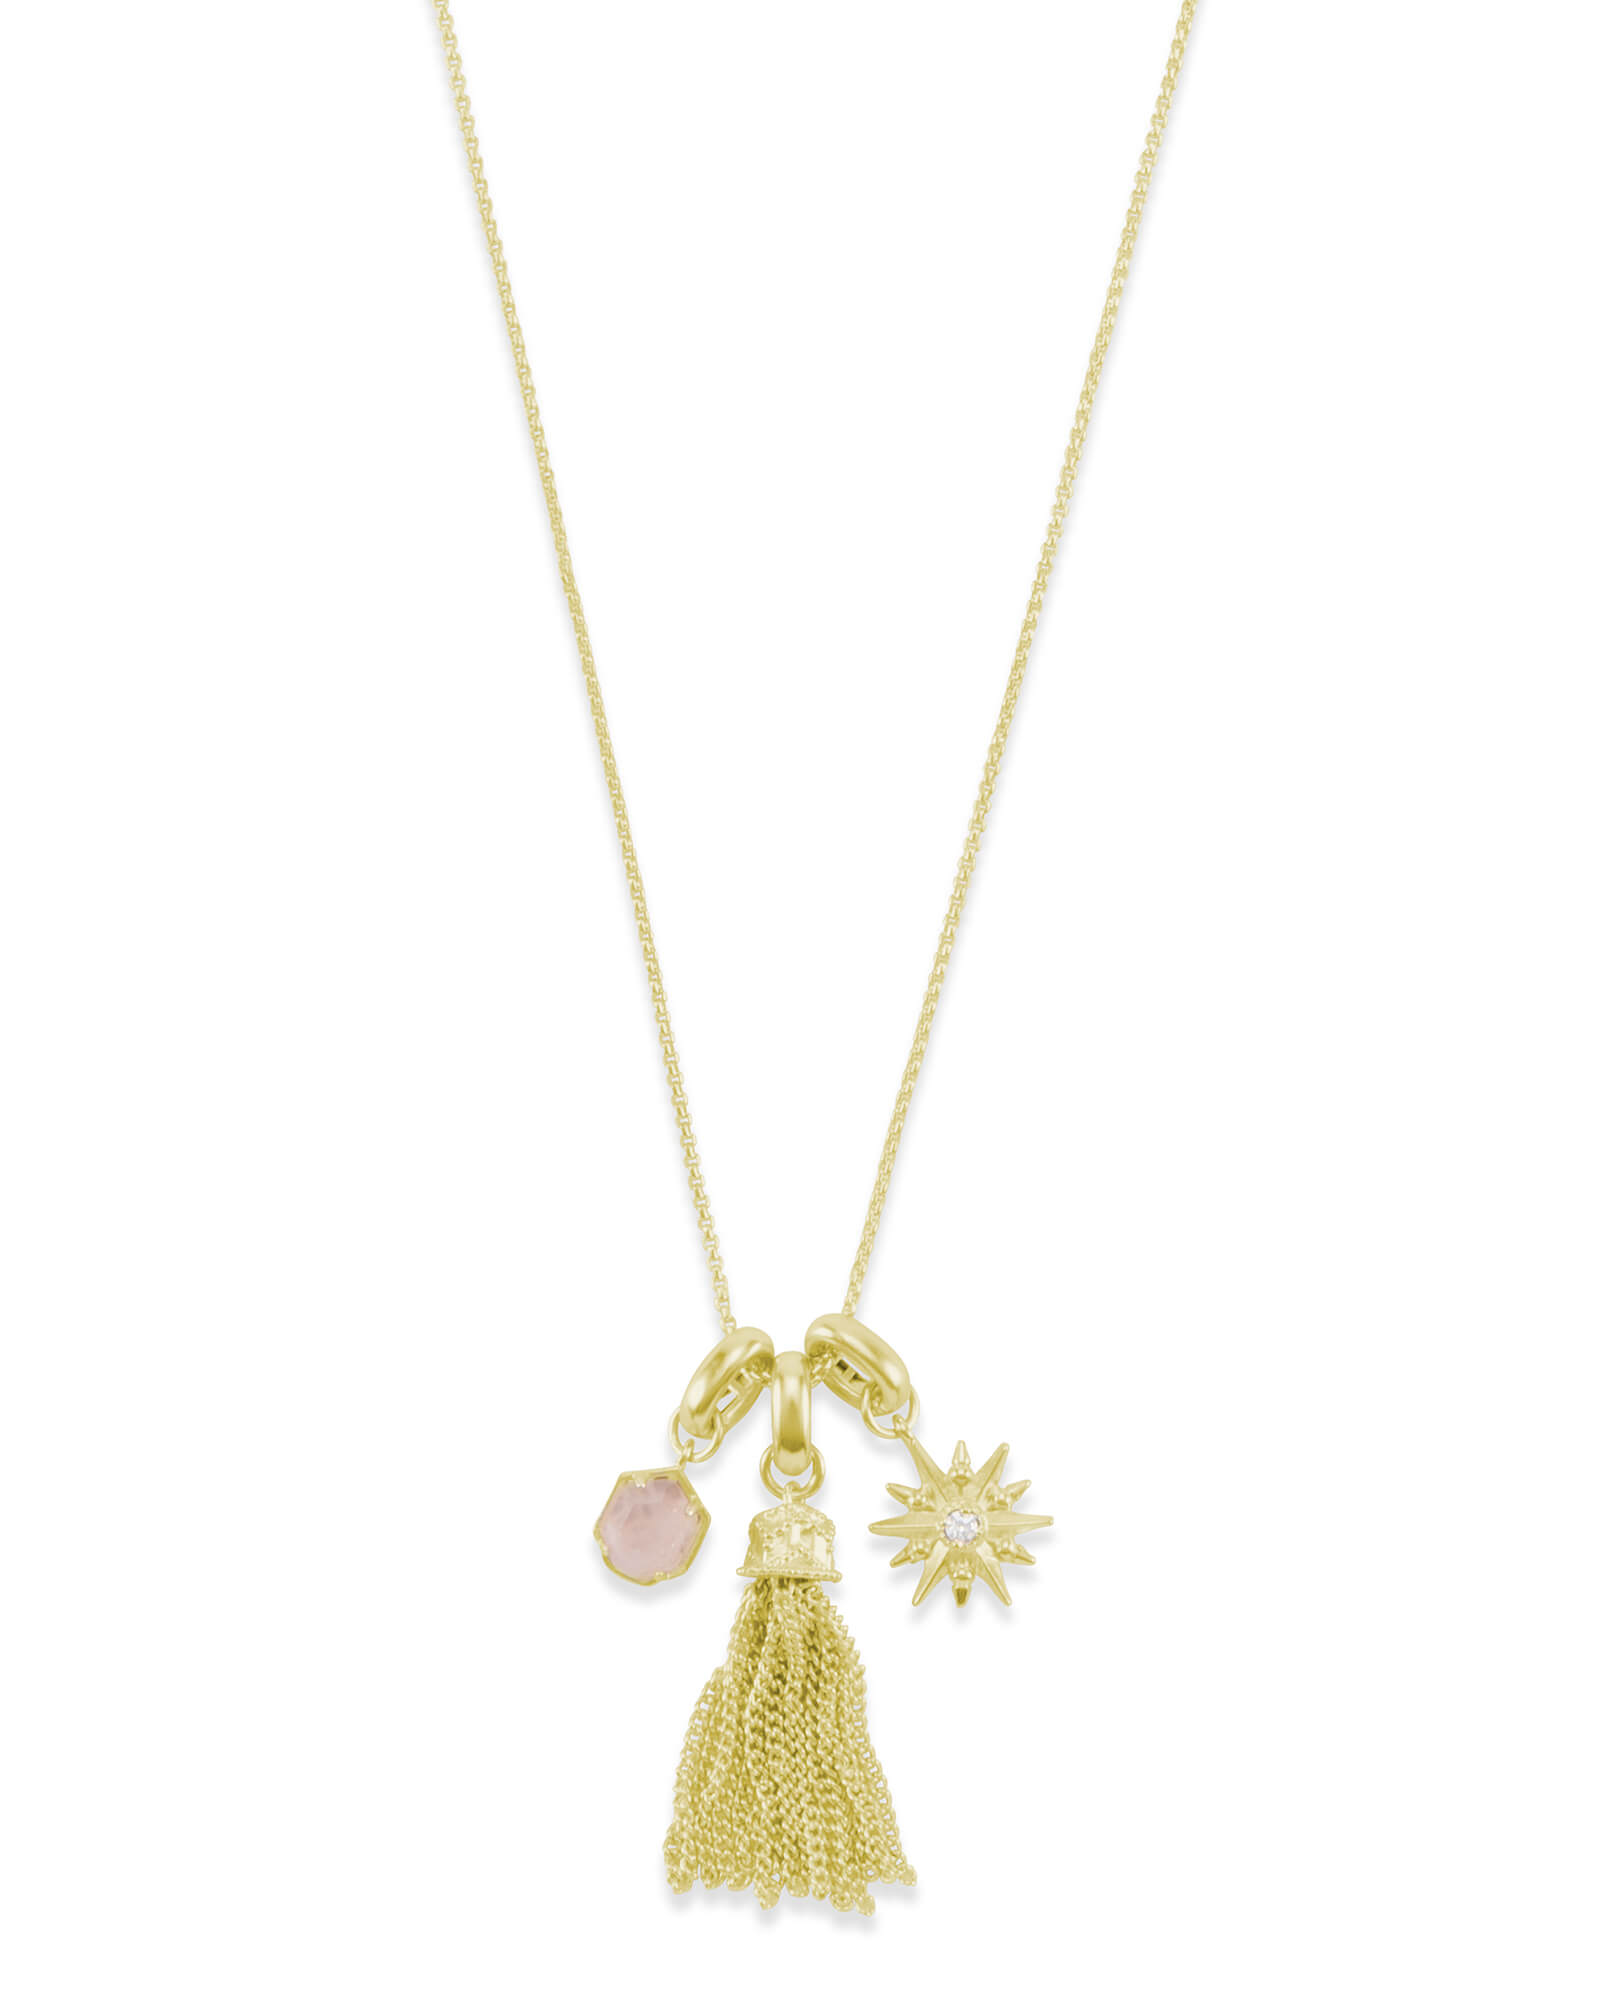 Love & Light Charm Necklace Set in Gold